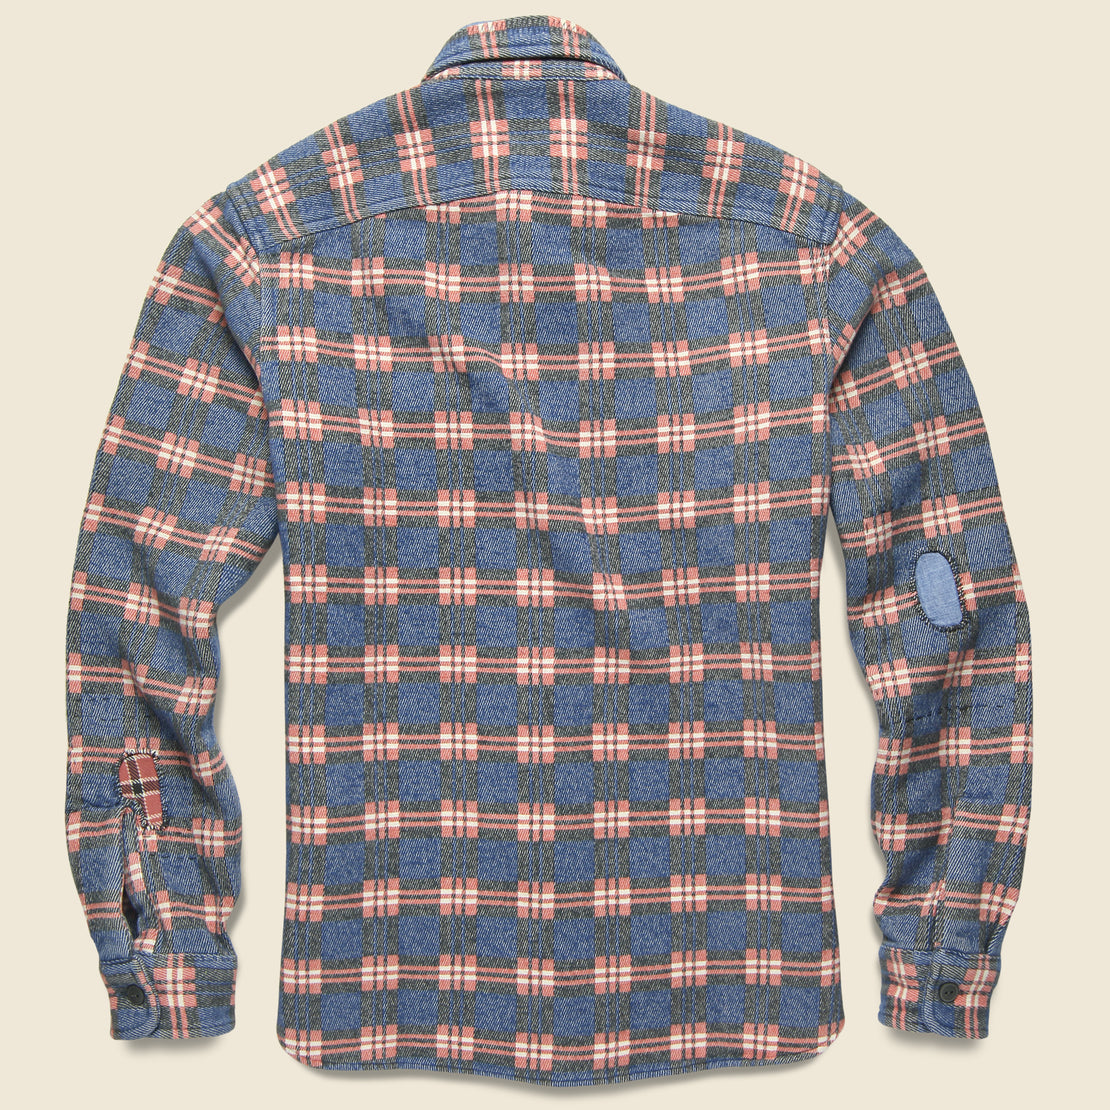 Repaired Jacquard Workshirt - Blue/Red